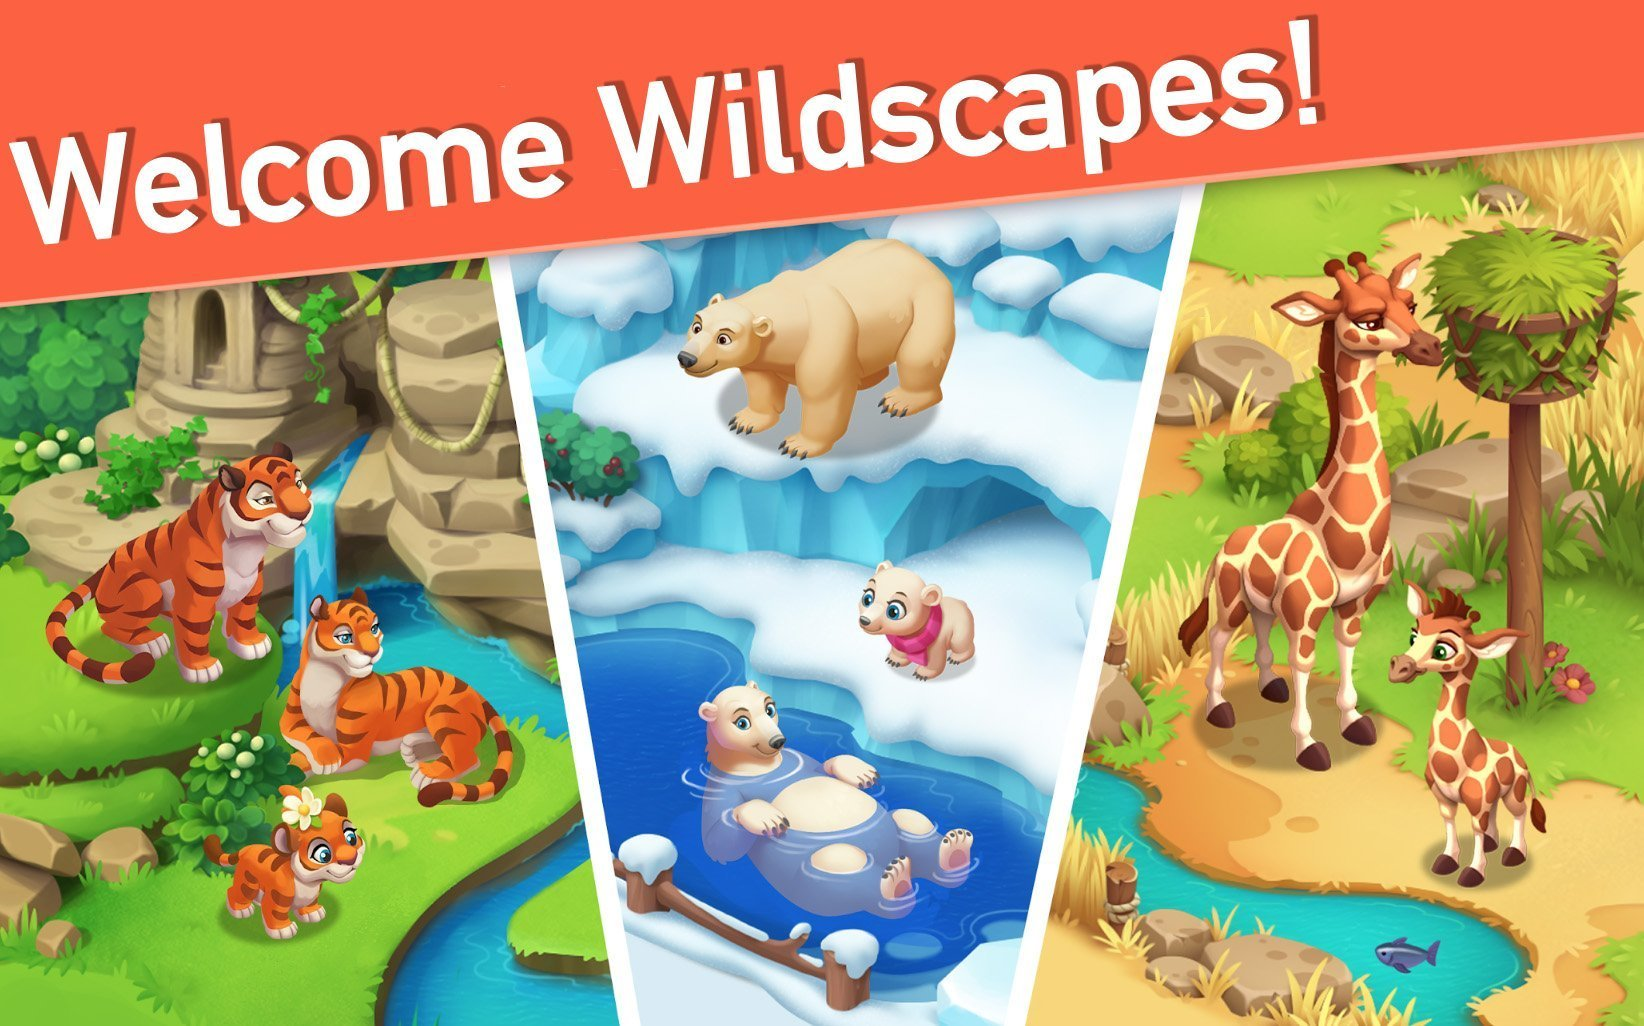 Playrix tests ad for its new game Wildscapes